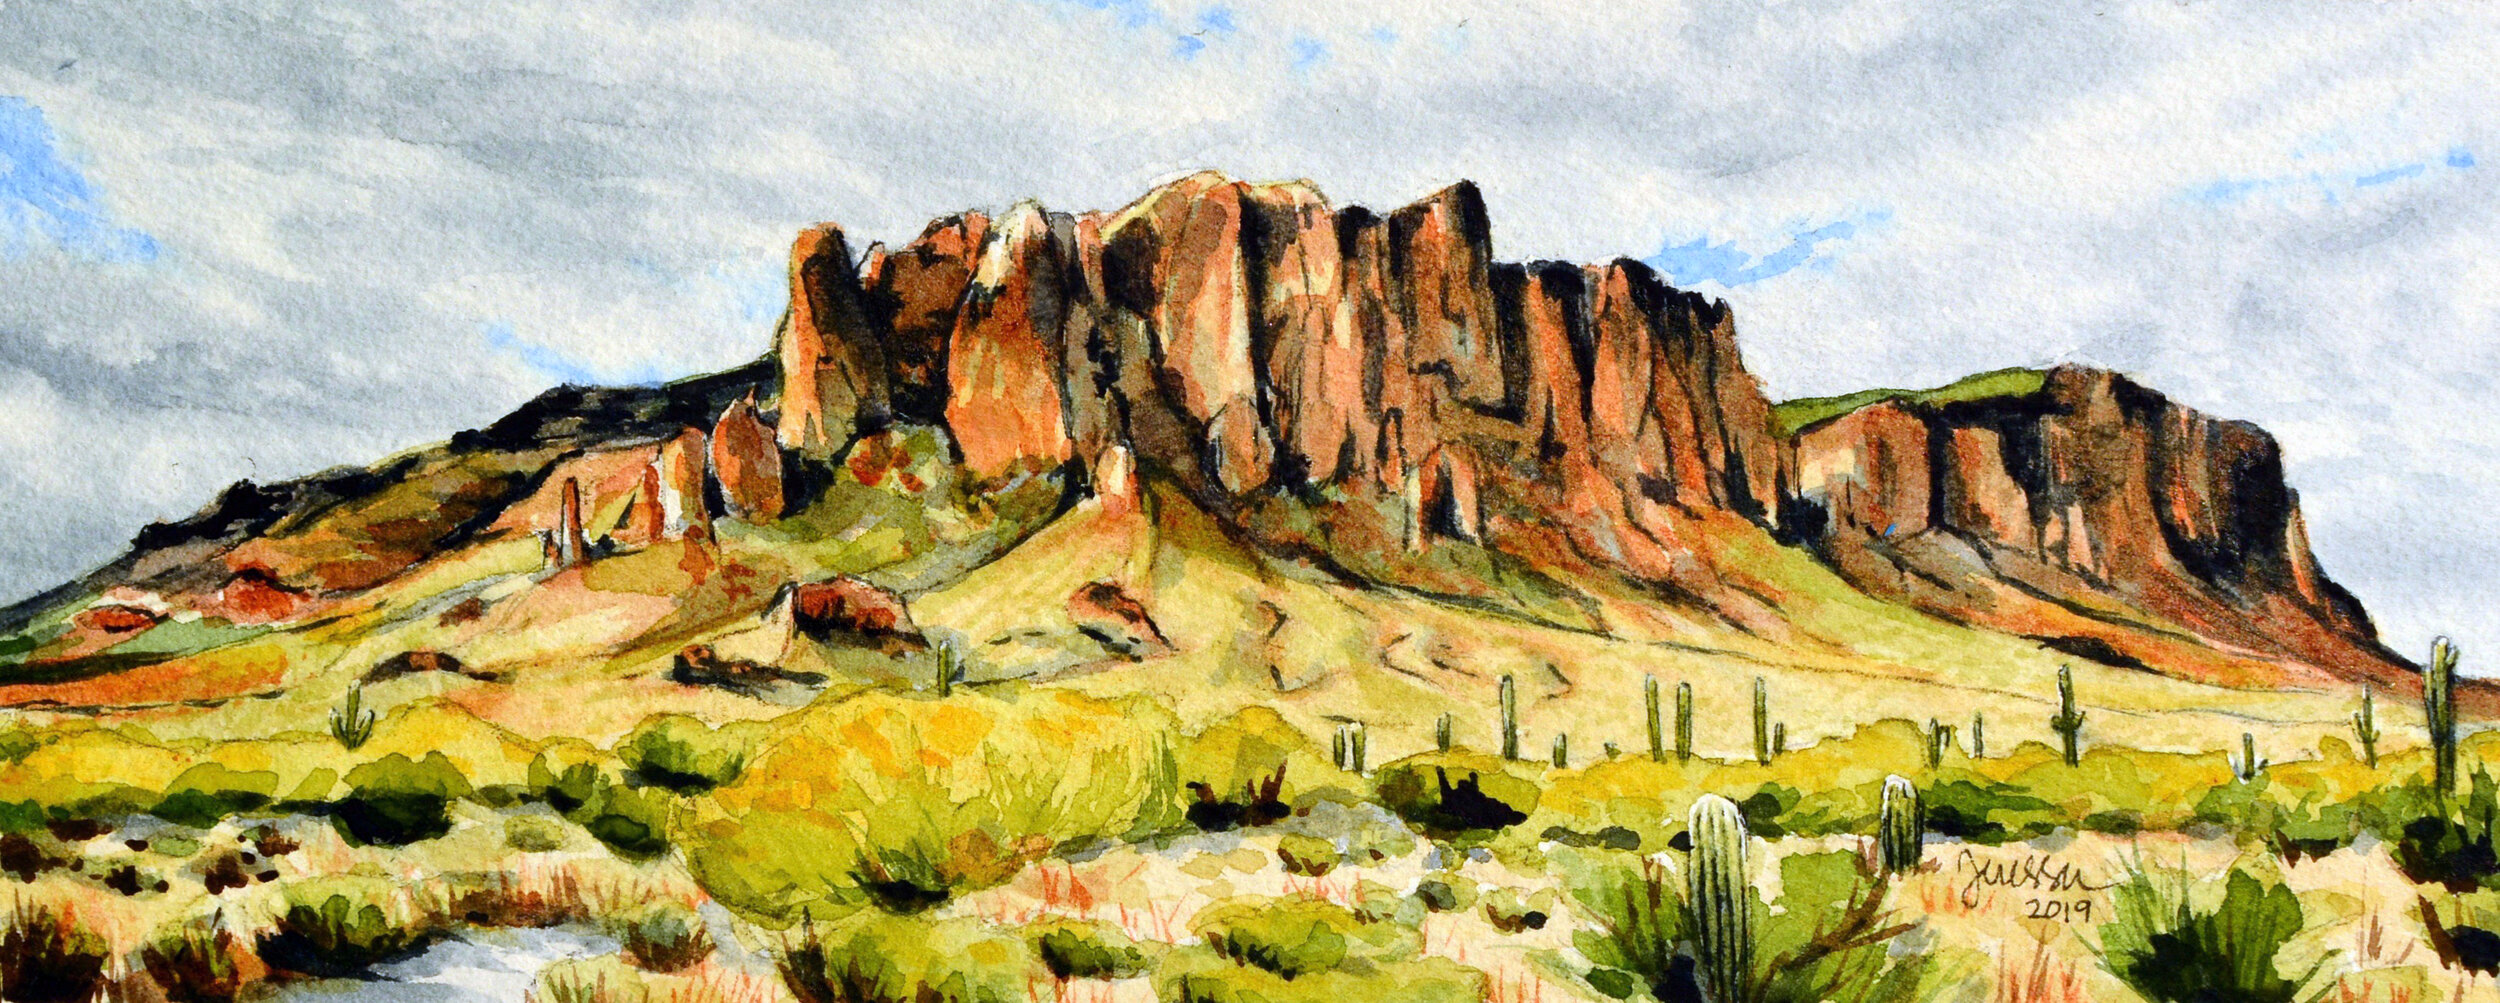 """""""Cache"""" 10x4"""", Watercolor on 140 lb. Arches cold press watercolor paper This piece is on hold for upcoming exhibition."""